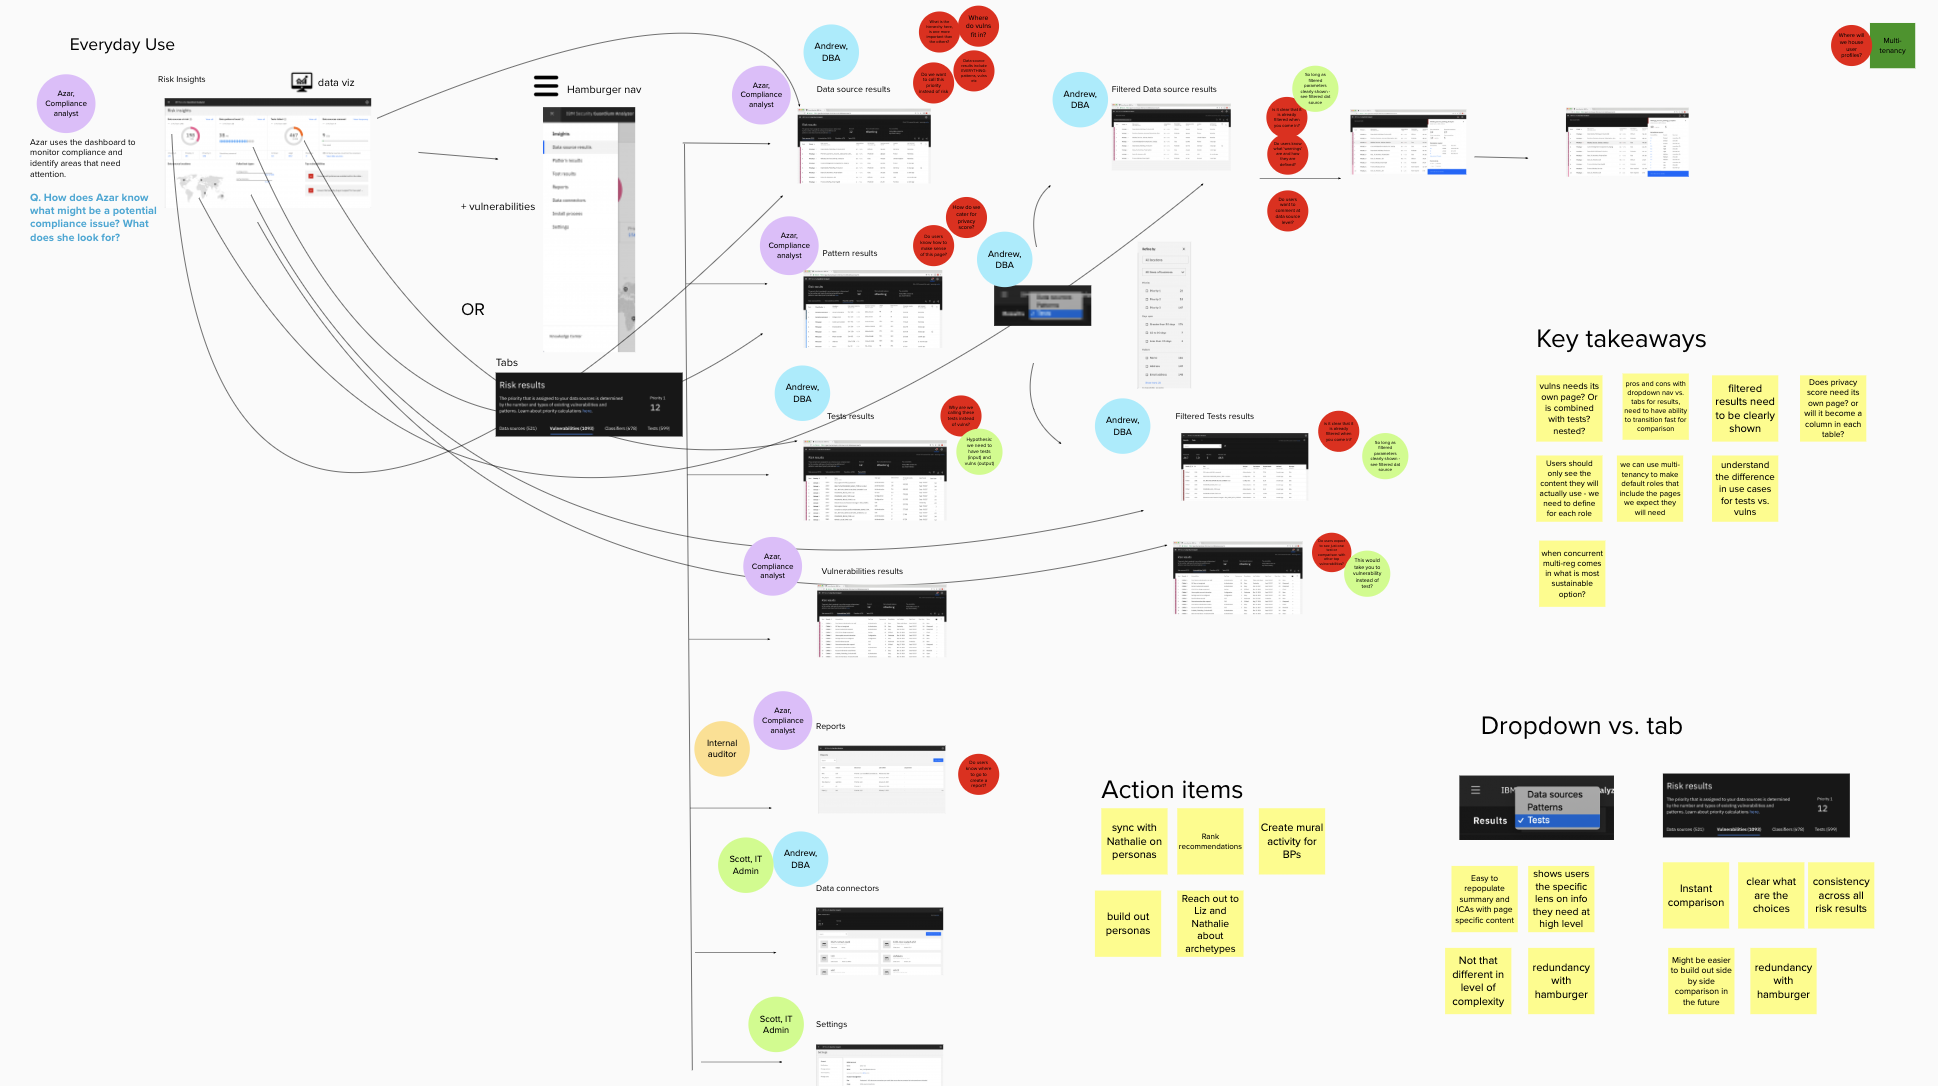 Empathizing with our users to understand their perspective is key. In addition to empathy maps and journey maps we took an in-depth look at our information architecture to ensure users could navigate swiftly to accomplish their task at hand.